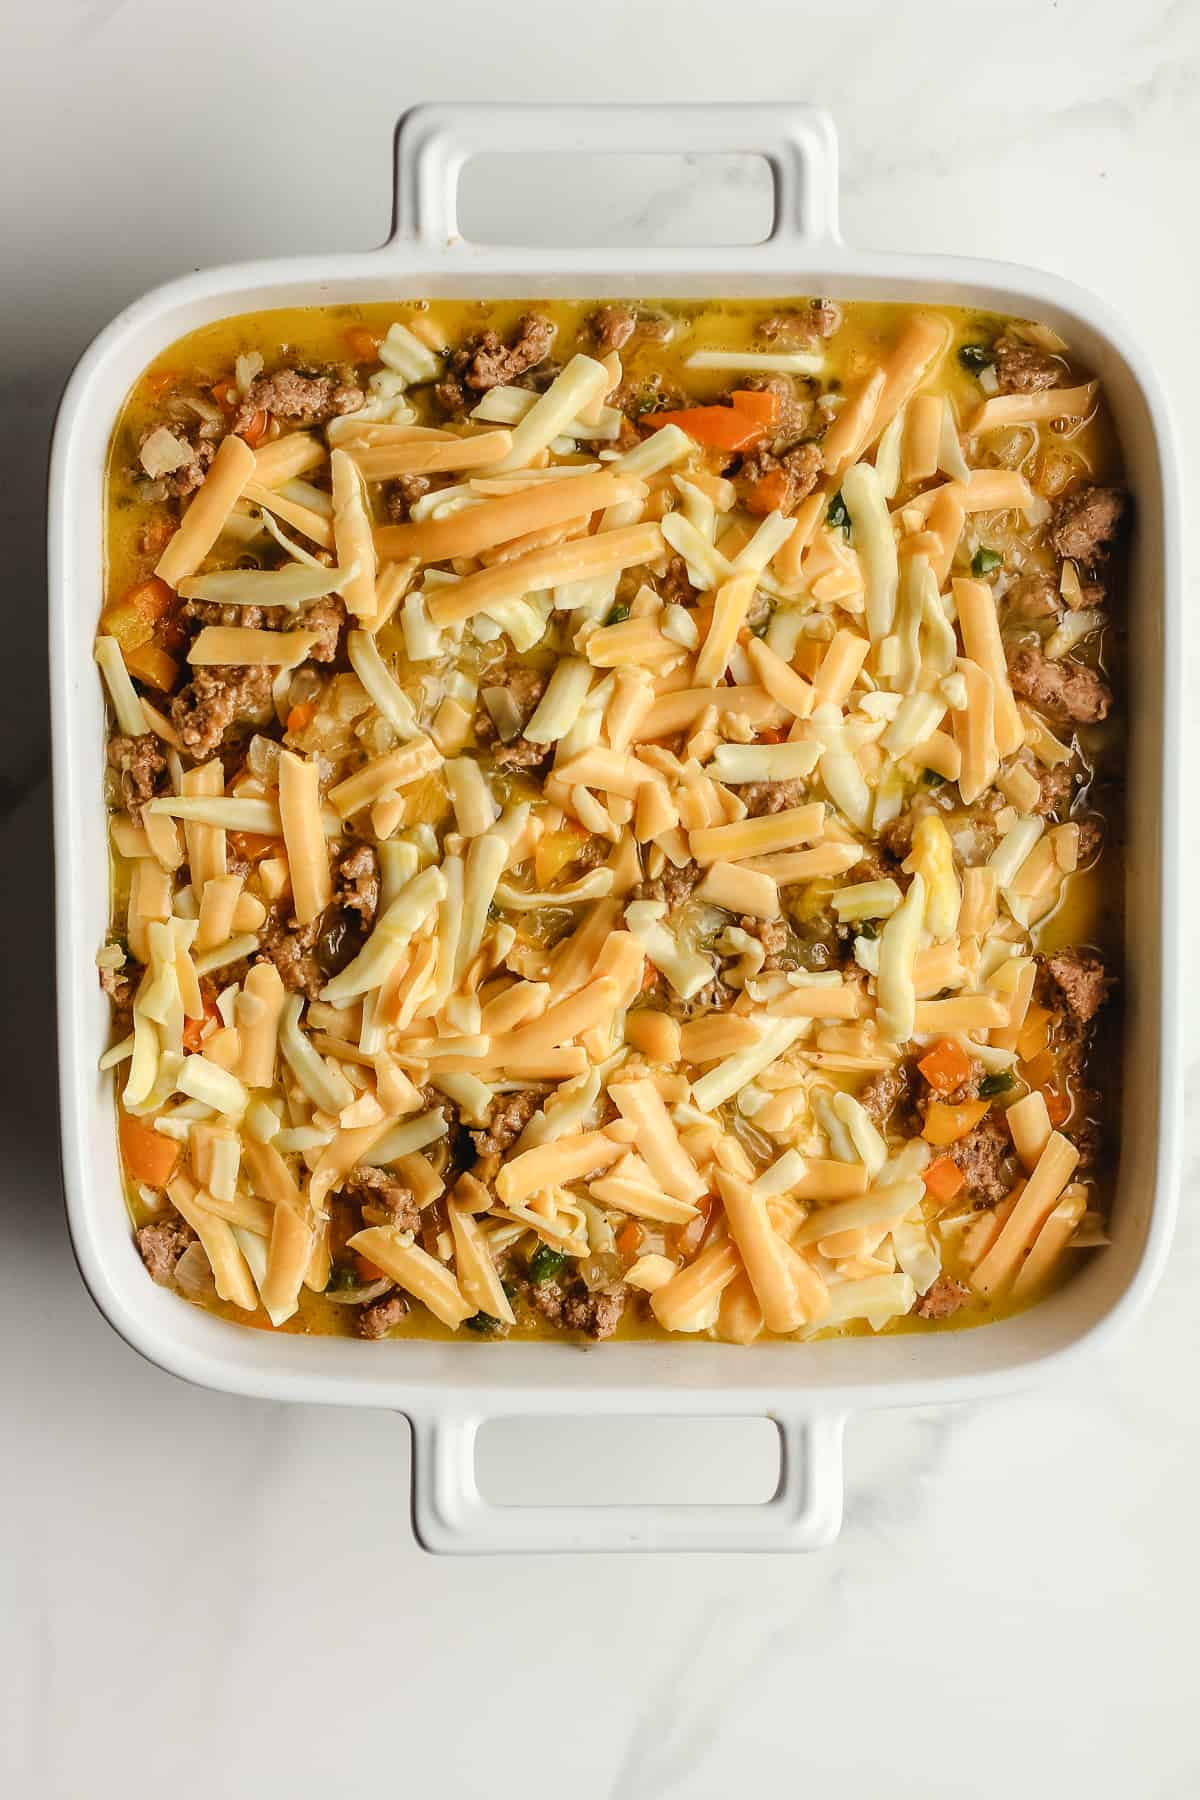 A 9 inch casserole with the unbaked casserole.